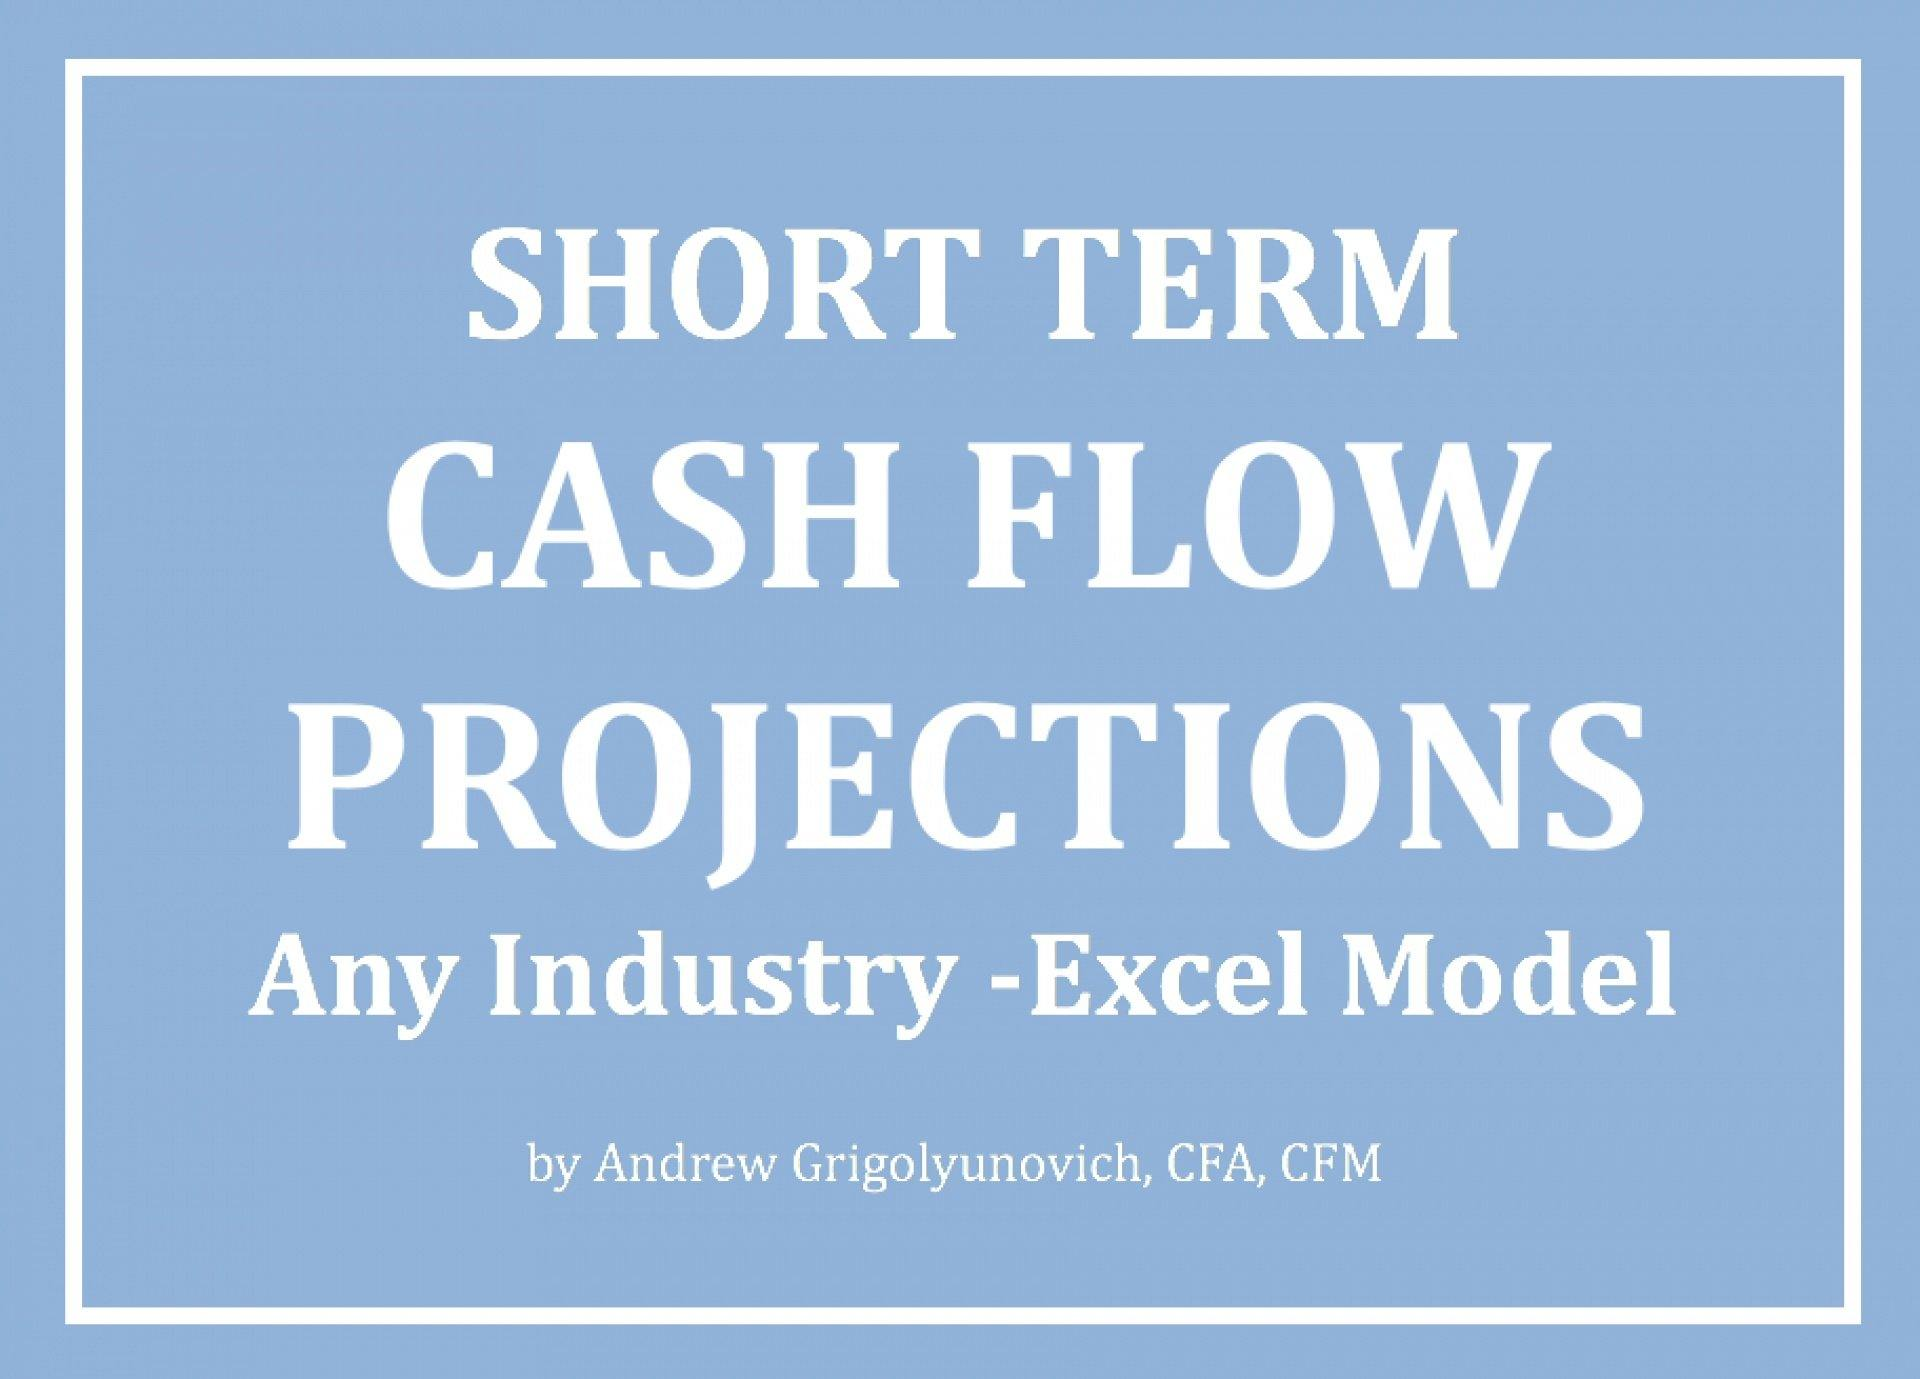 Short Term Cash Flow Projections Excel Model - Any Industry - Templarket -  Business Templates Marketplace